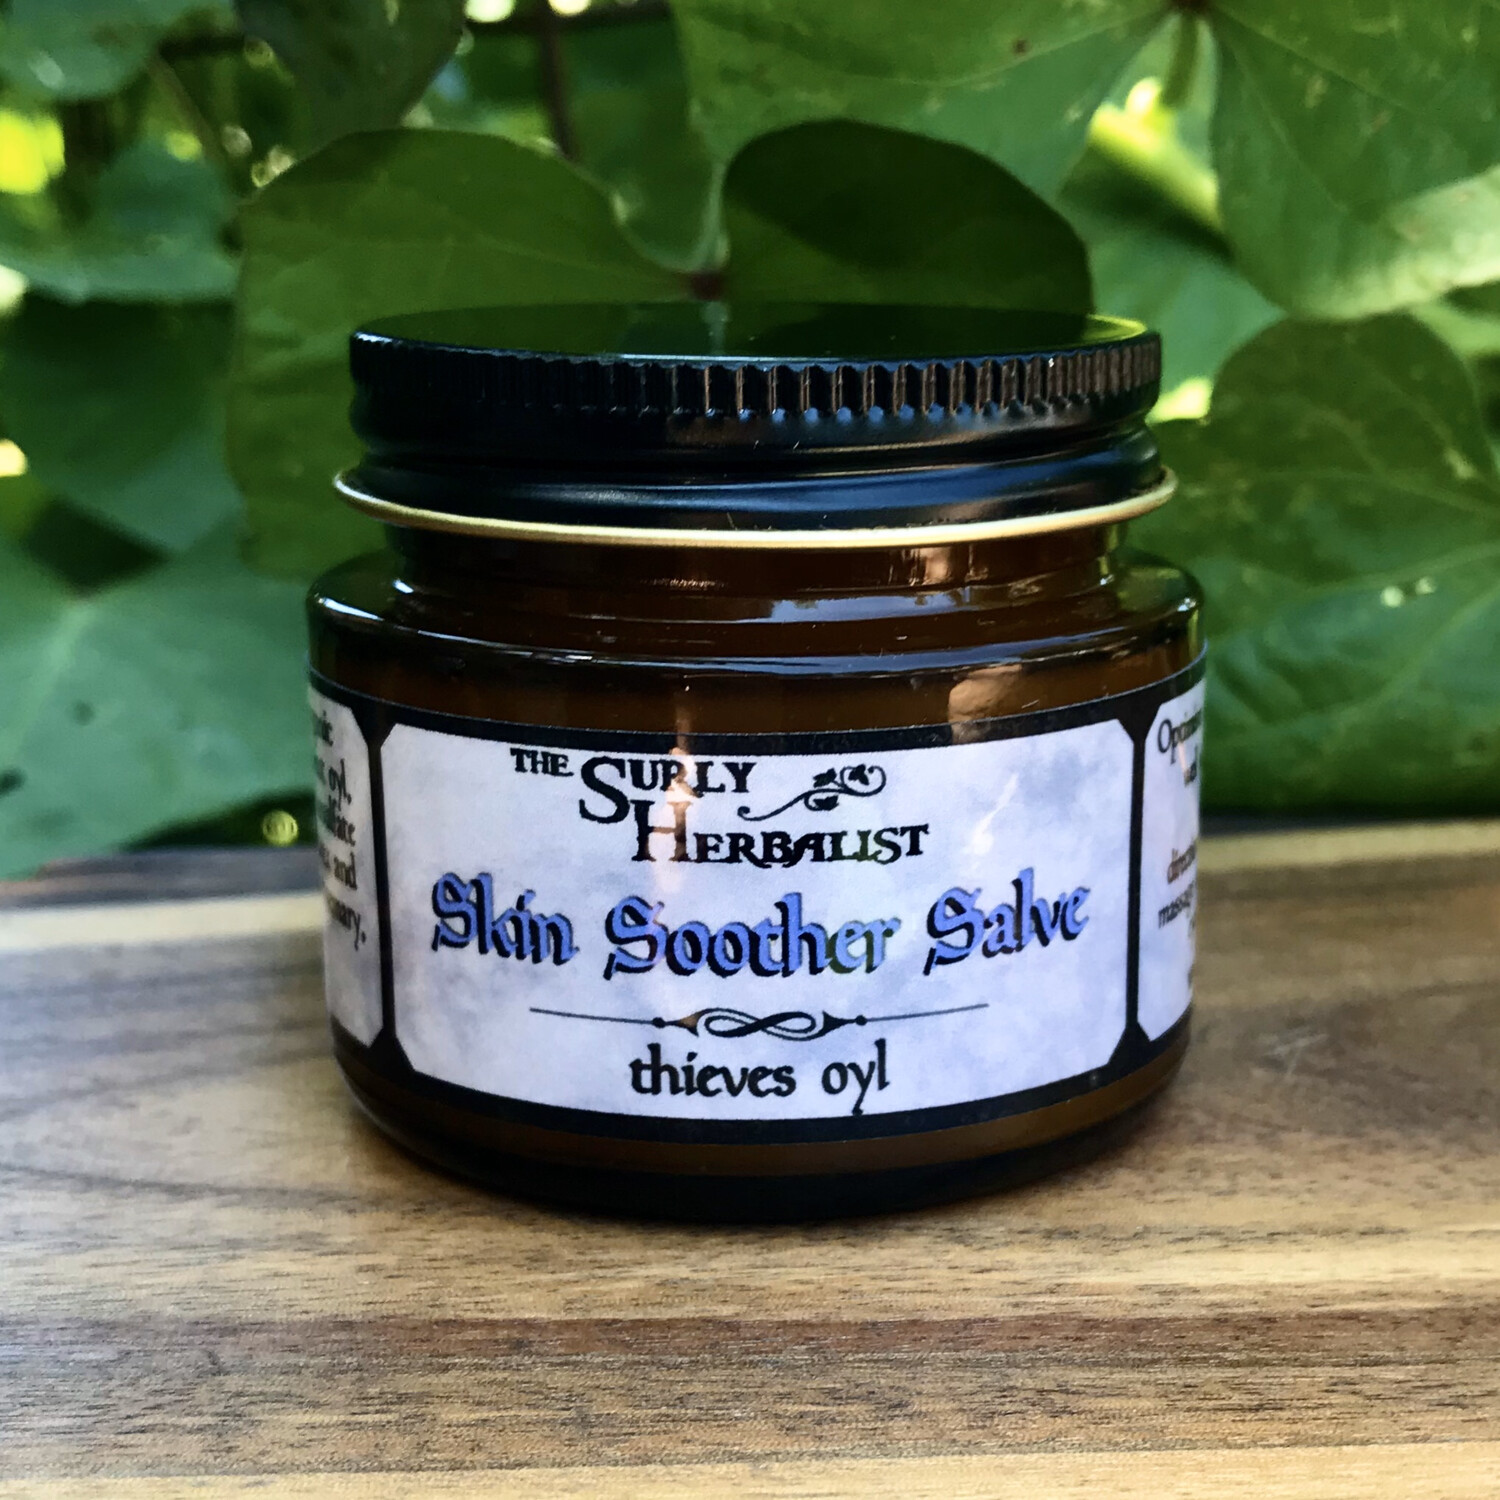 Skin Soother Salve - Thieves Oyl